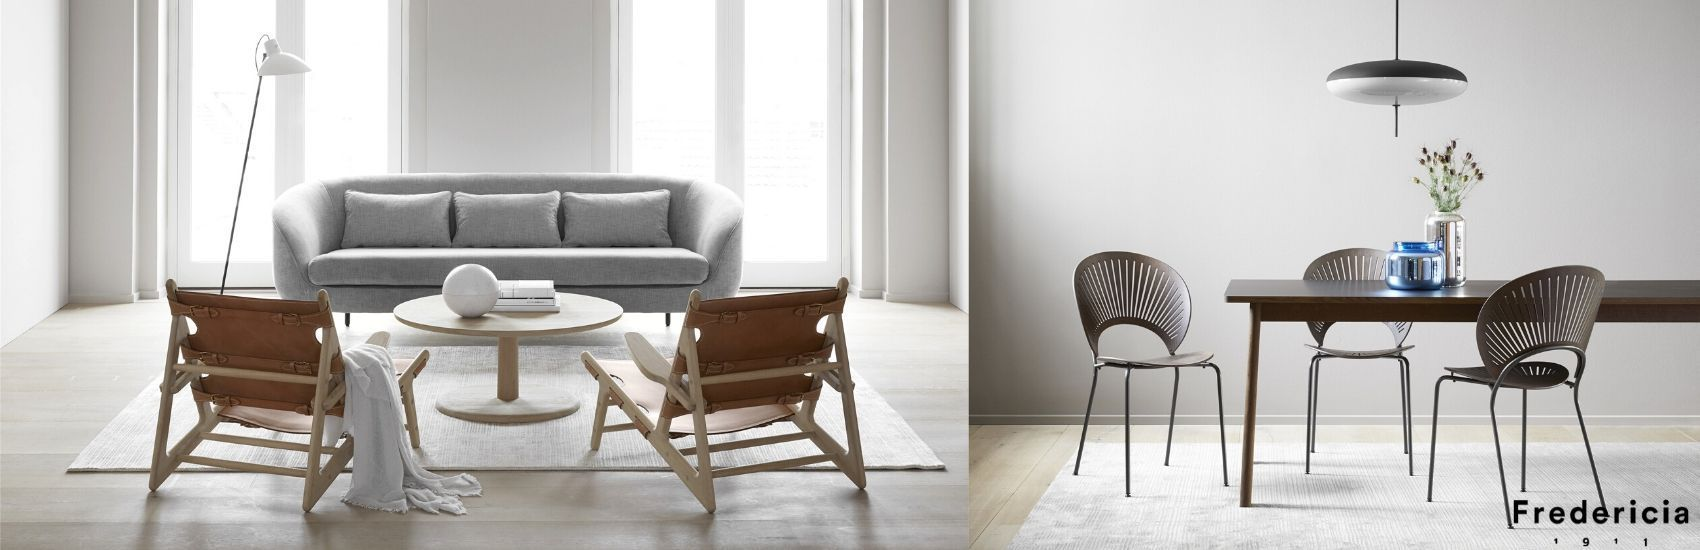 Shop Fredericia Furniture at Palette and Parlor